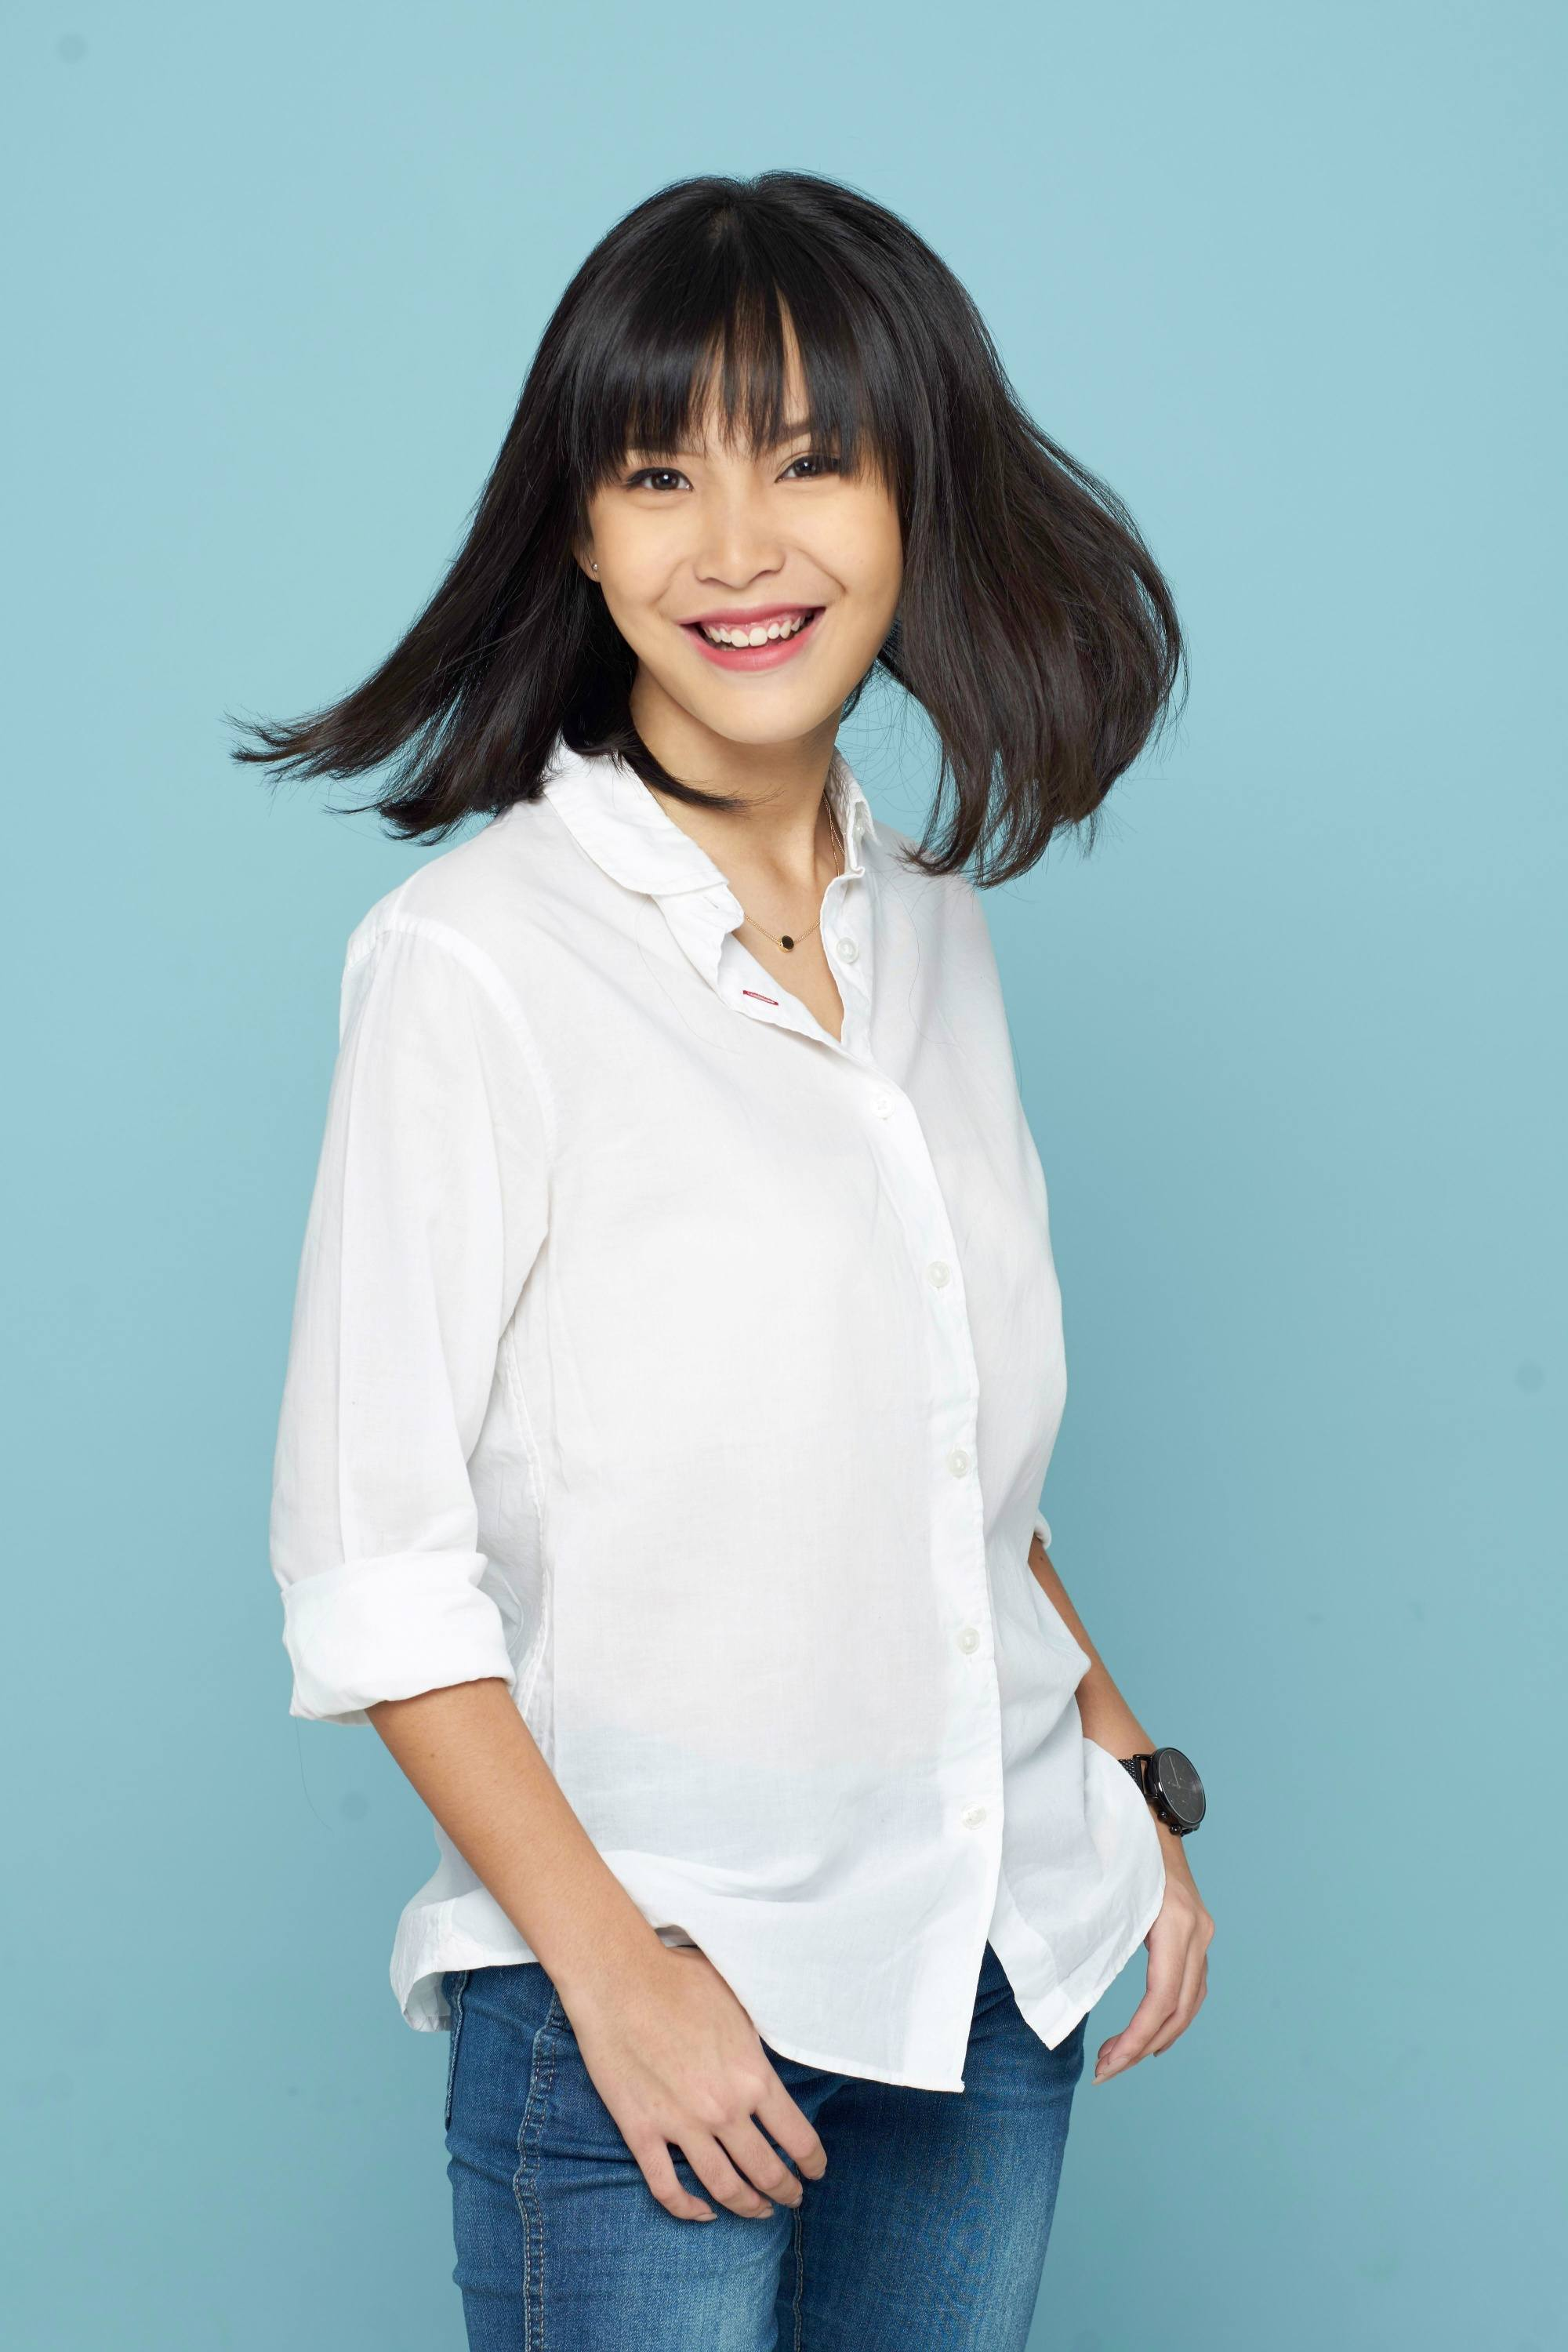 How to use leave-in conditioner: Asian woman with black medium-length hair with bangs wearing a white polo and jeans